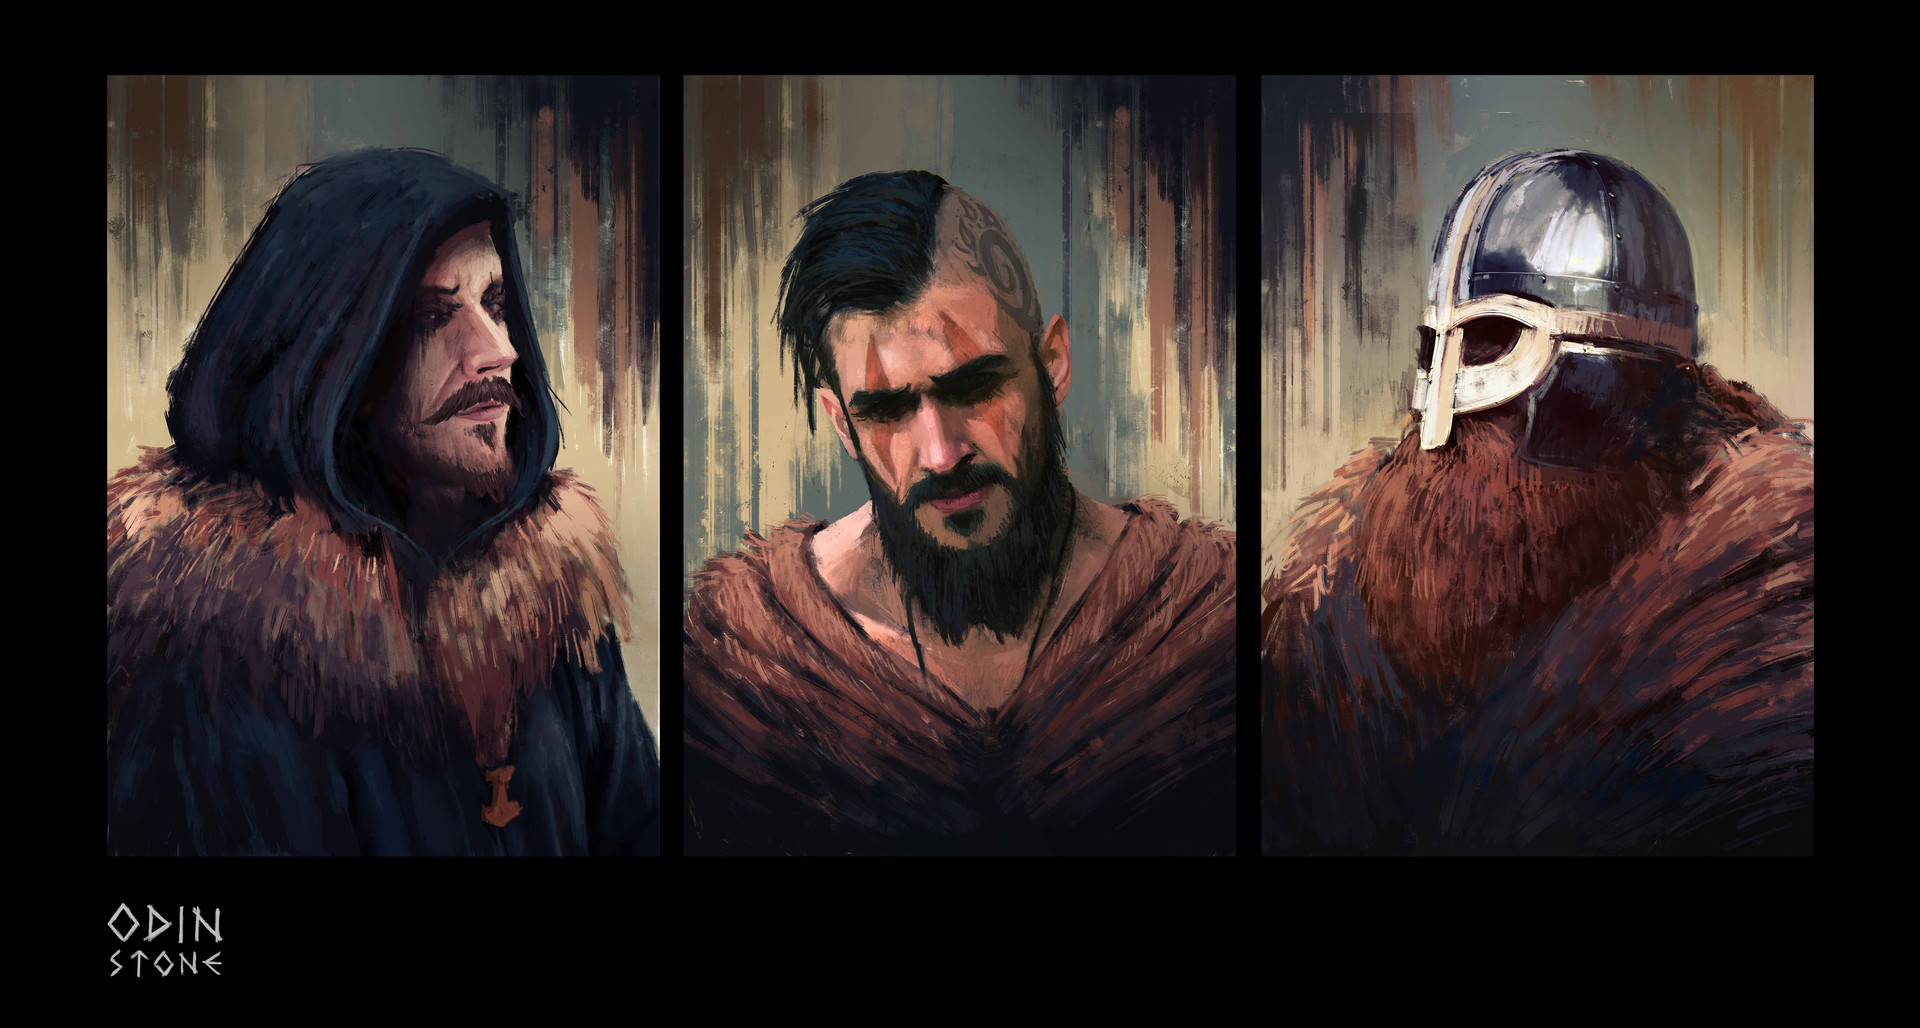 Imx ud din conceptart characters